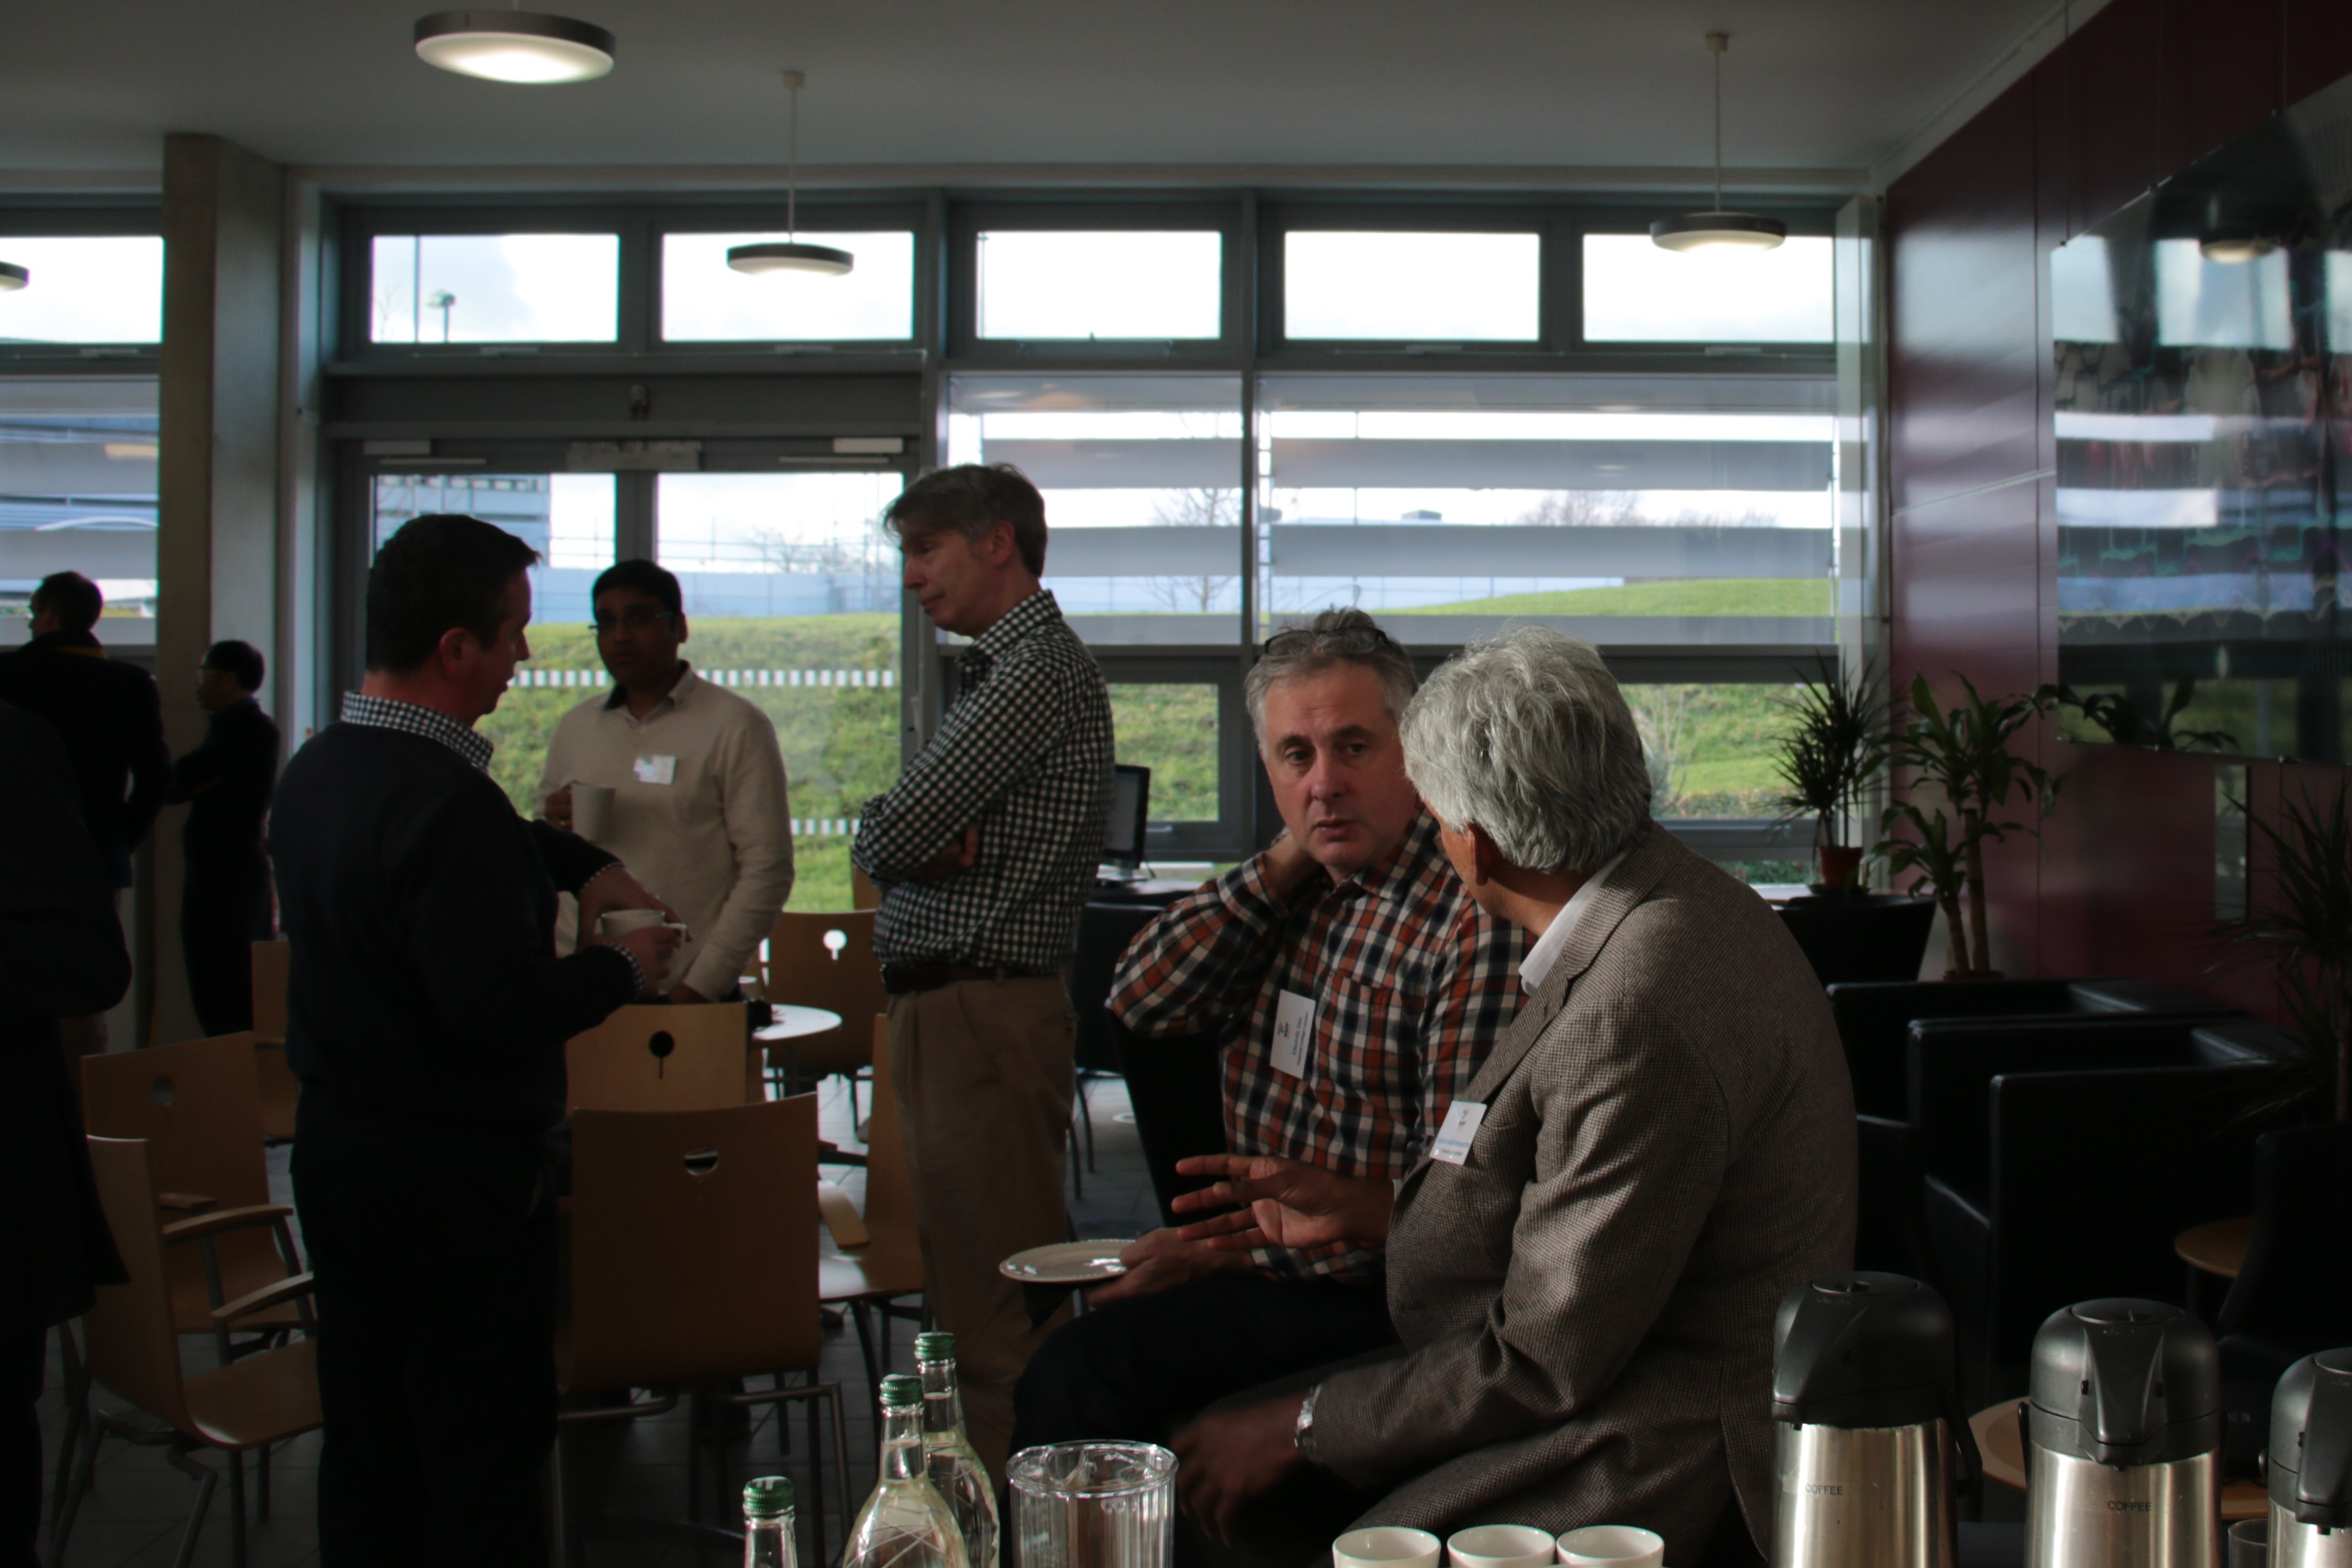 First Quarterly Research Meeting for MAPP's Investigators and Researchers - Networking lunch at the first Quarterly Research Meeting for MAPP's Investigators and Researchers